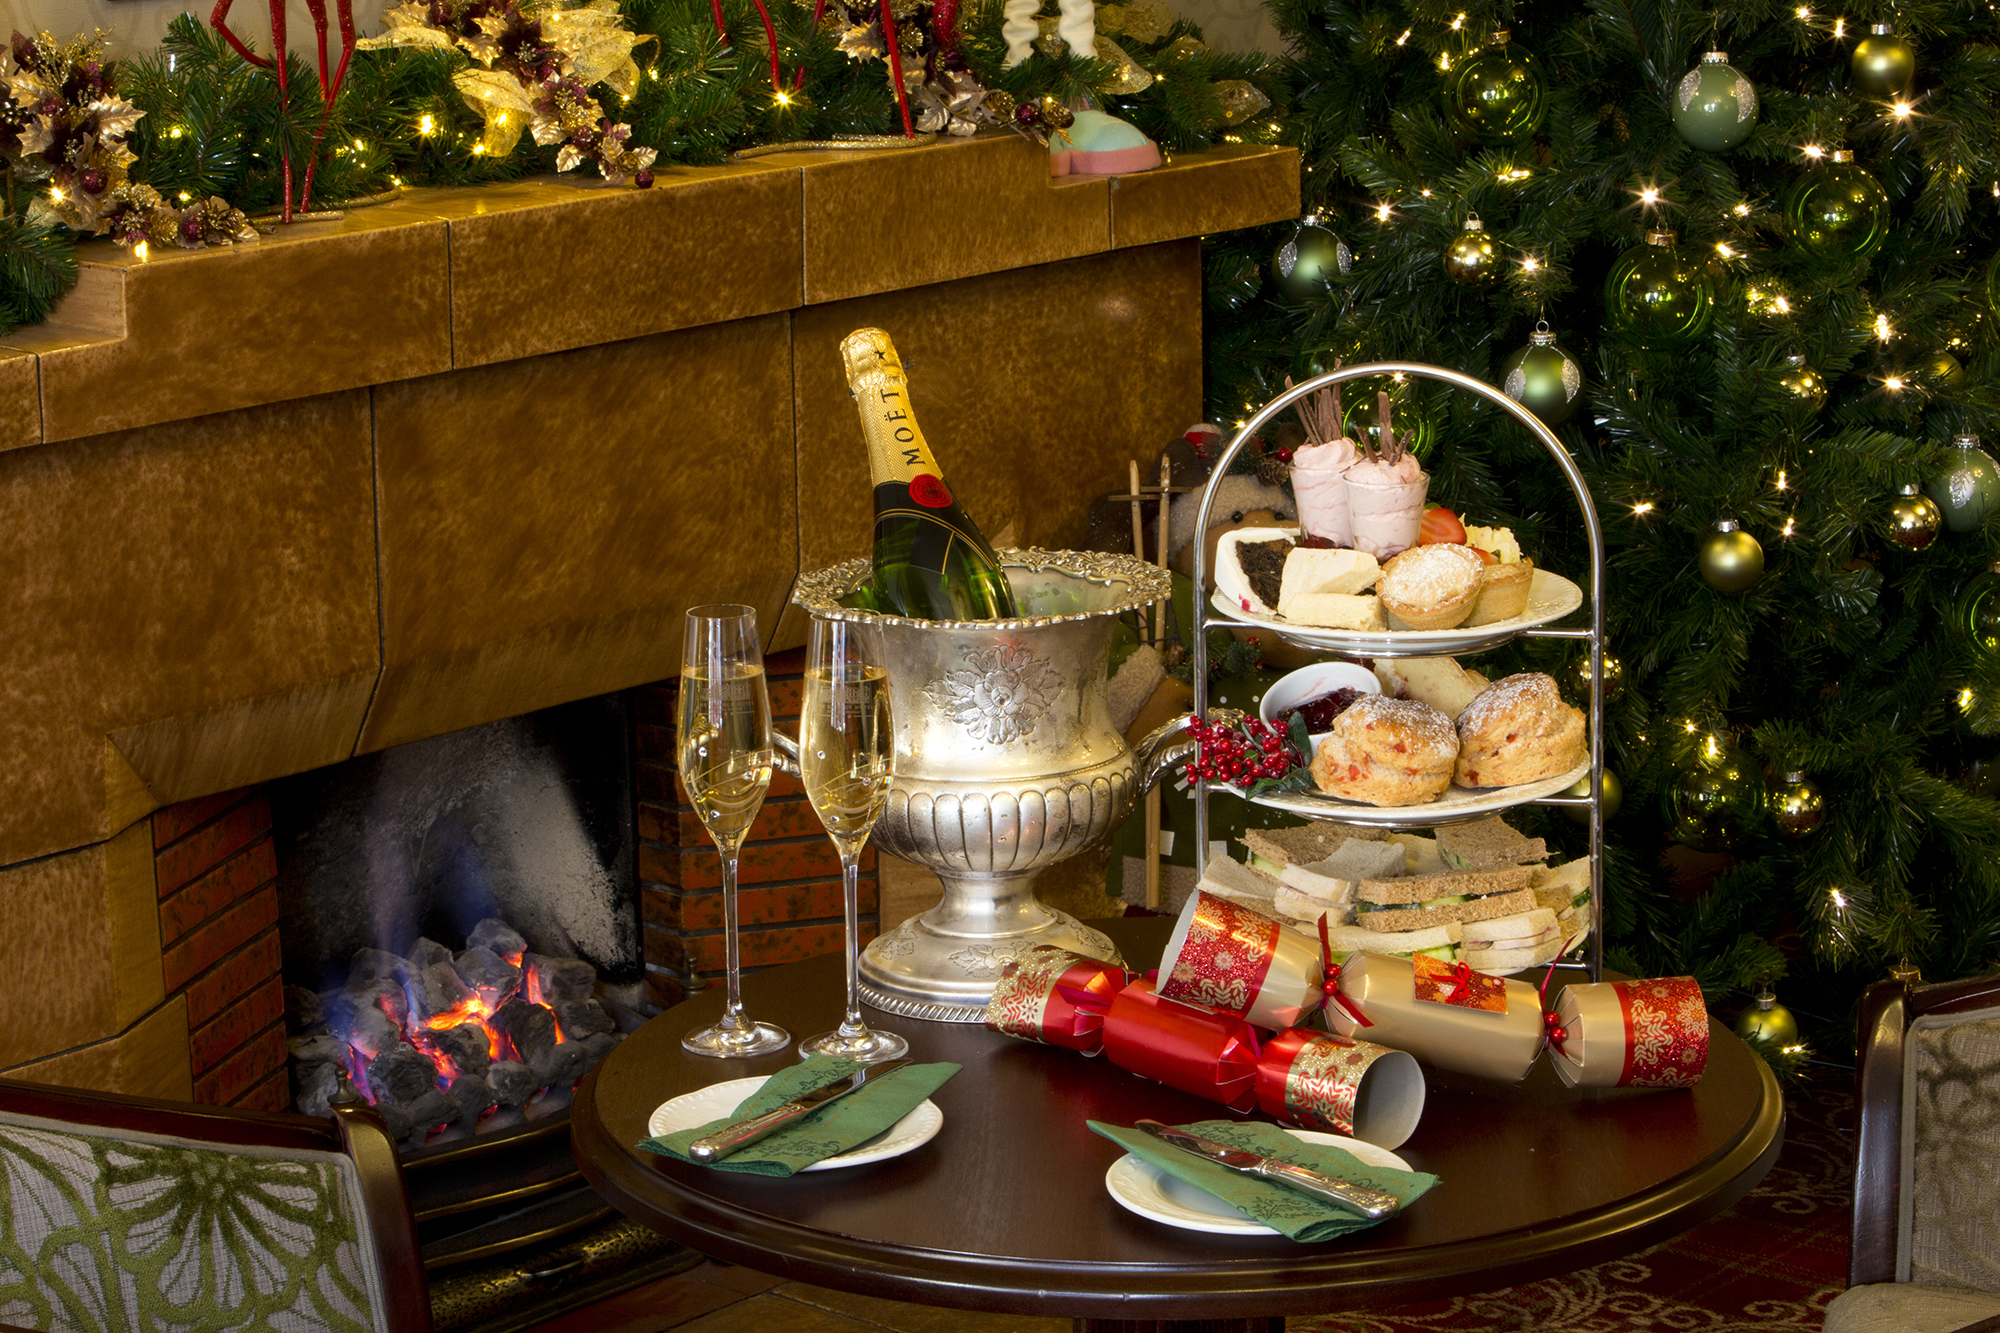 Festive Afternoon Tea at the Skiddaw Hotel